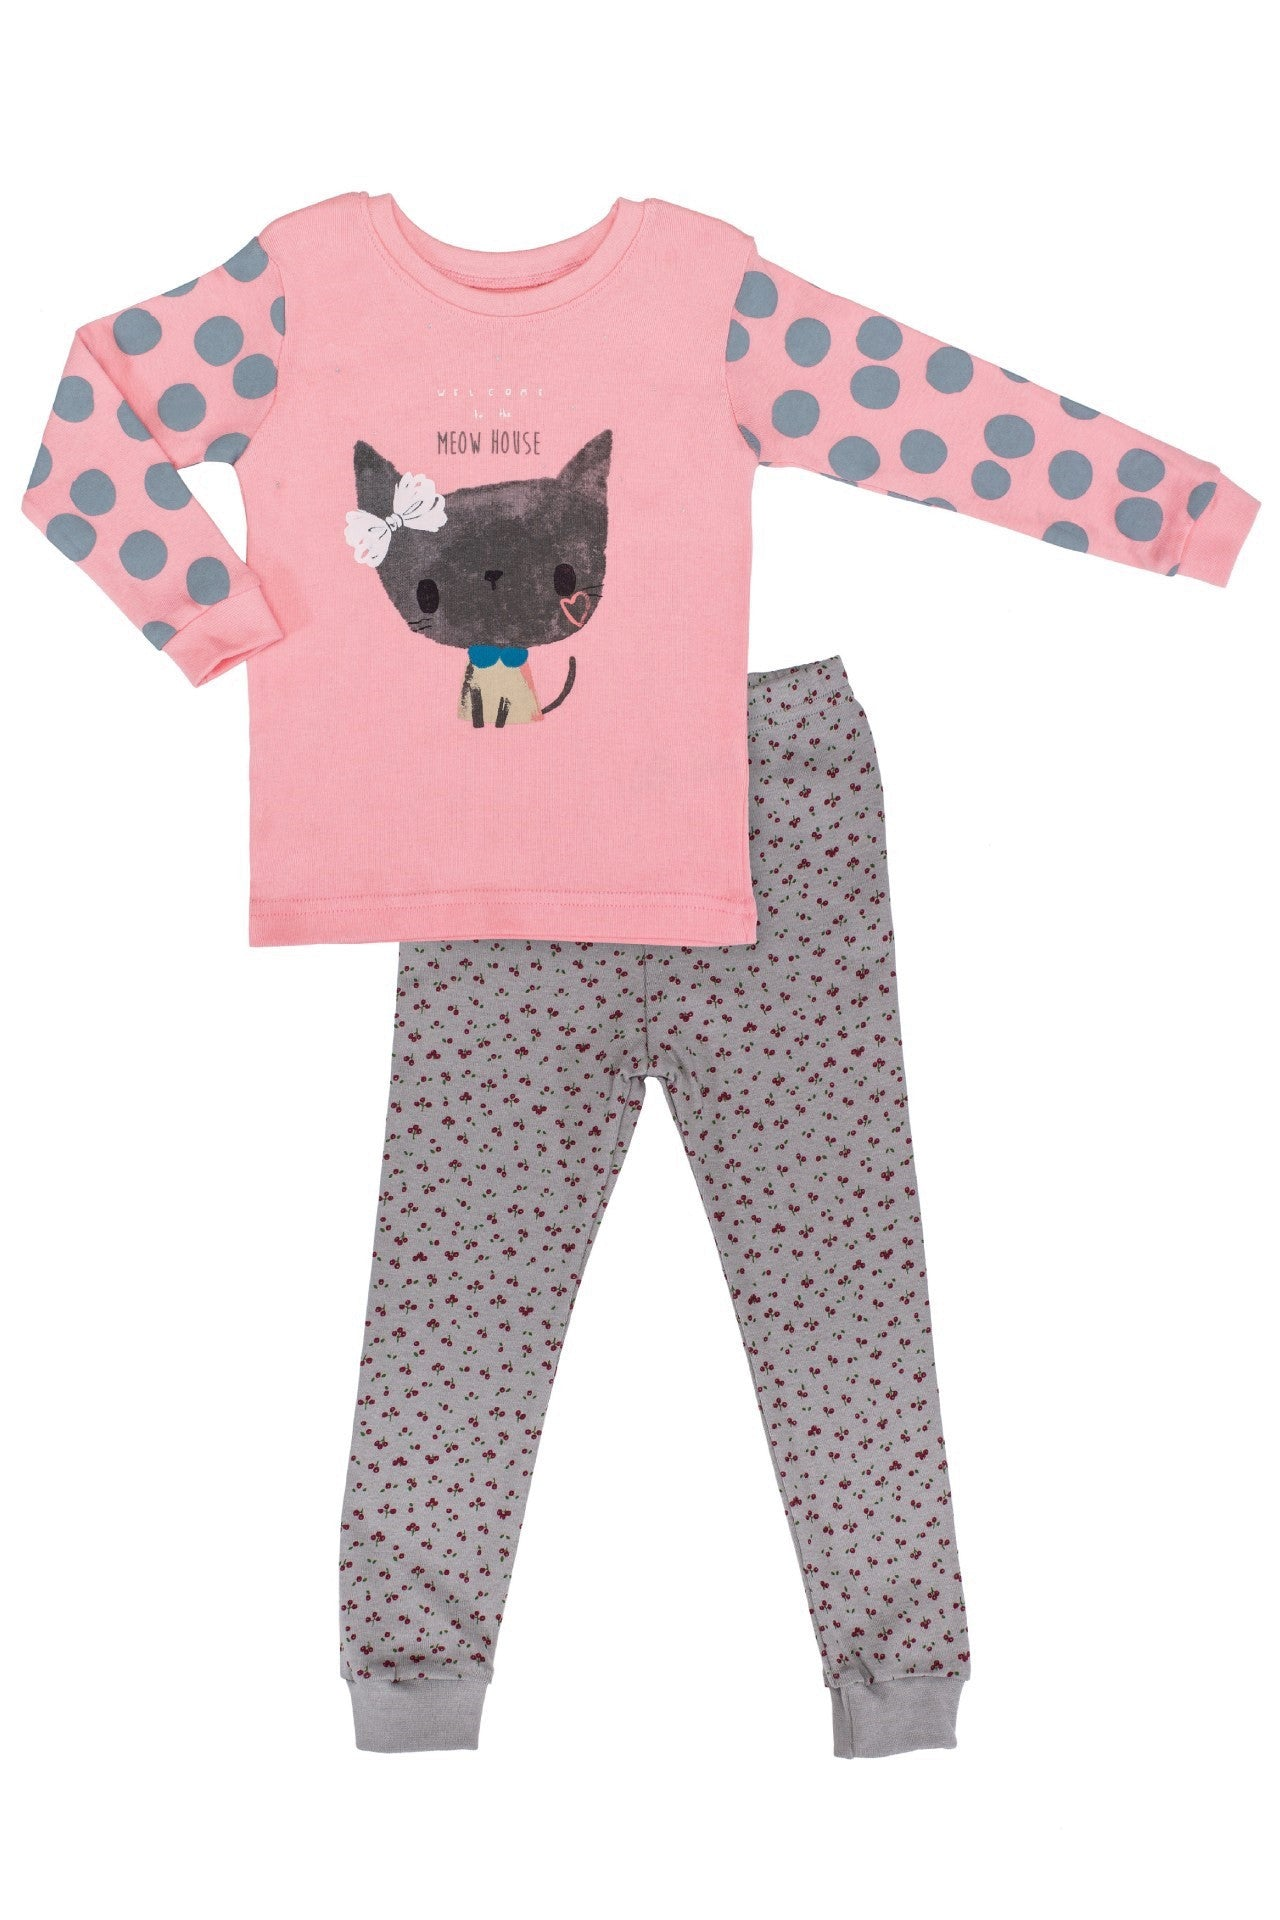 30s Cotton Count - Lightest Pajamas - Meow Meow